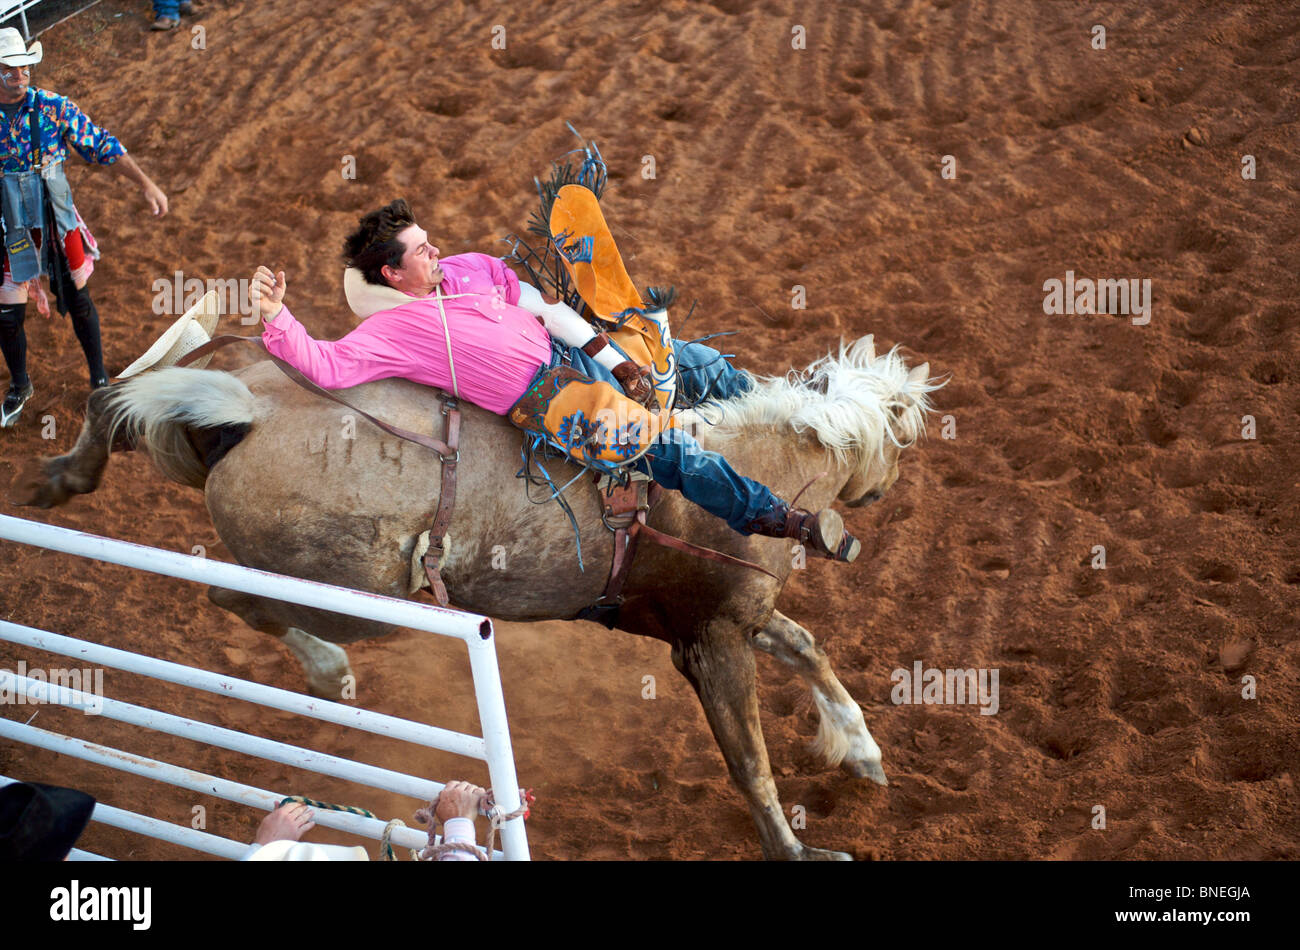 Horse trying to throw rodeo cowboy member of PRCA from its back in Smalltown Bridgeport, Texas Stock Photo